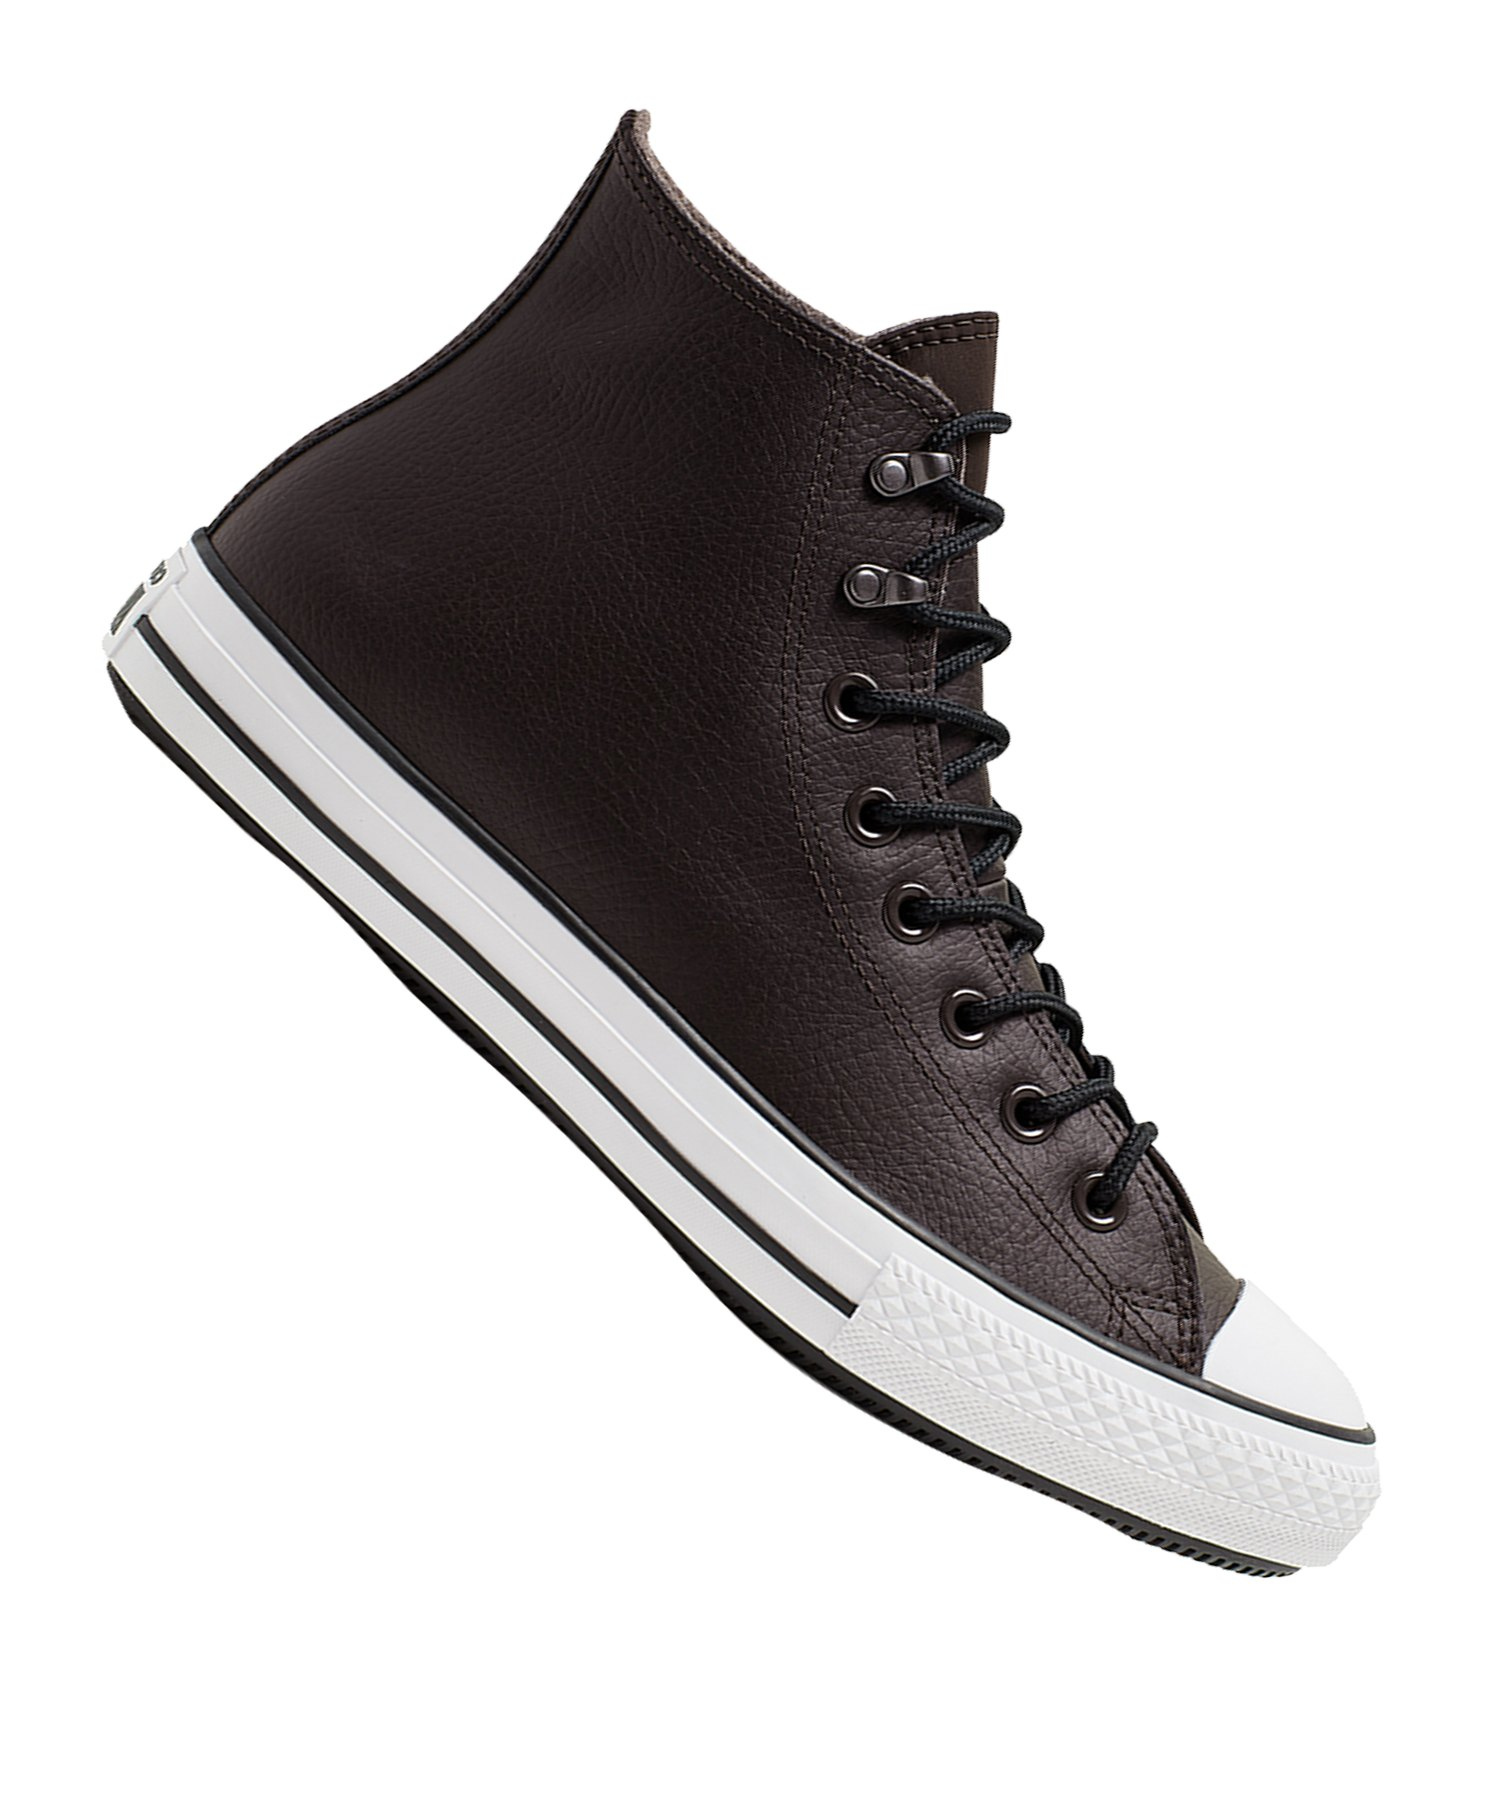 Converse Chuck Taylor AS Winter High Sneaker Braun - braun